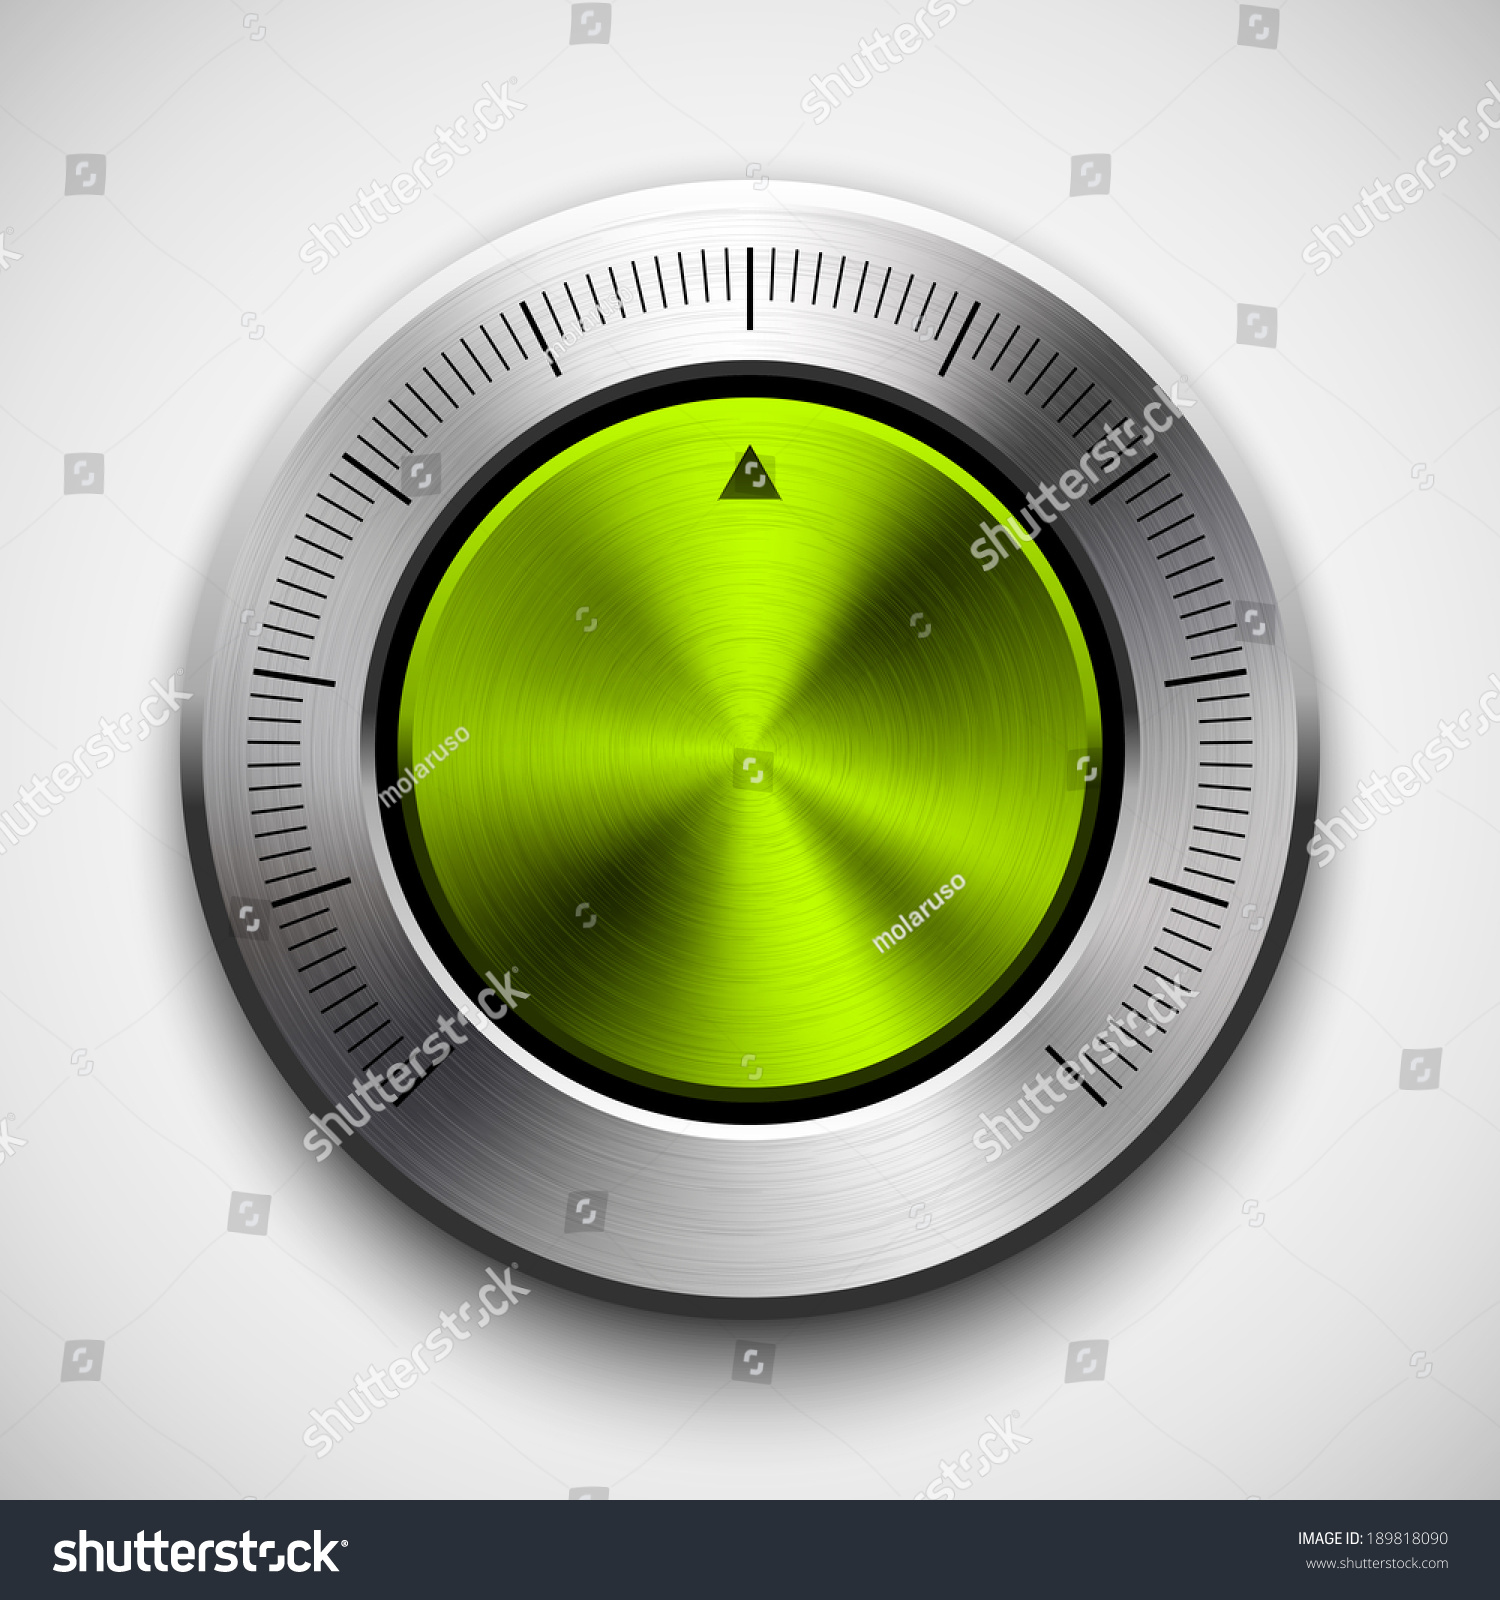 Volume Control Button : Green lime abstract technology music button volume